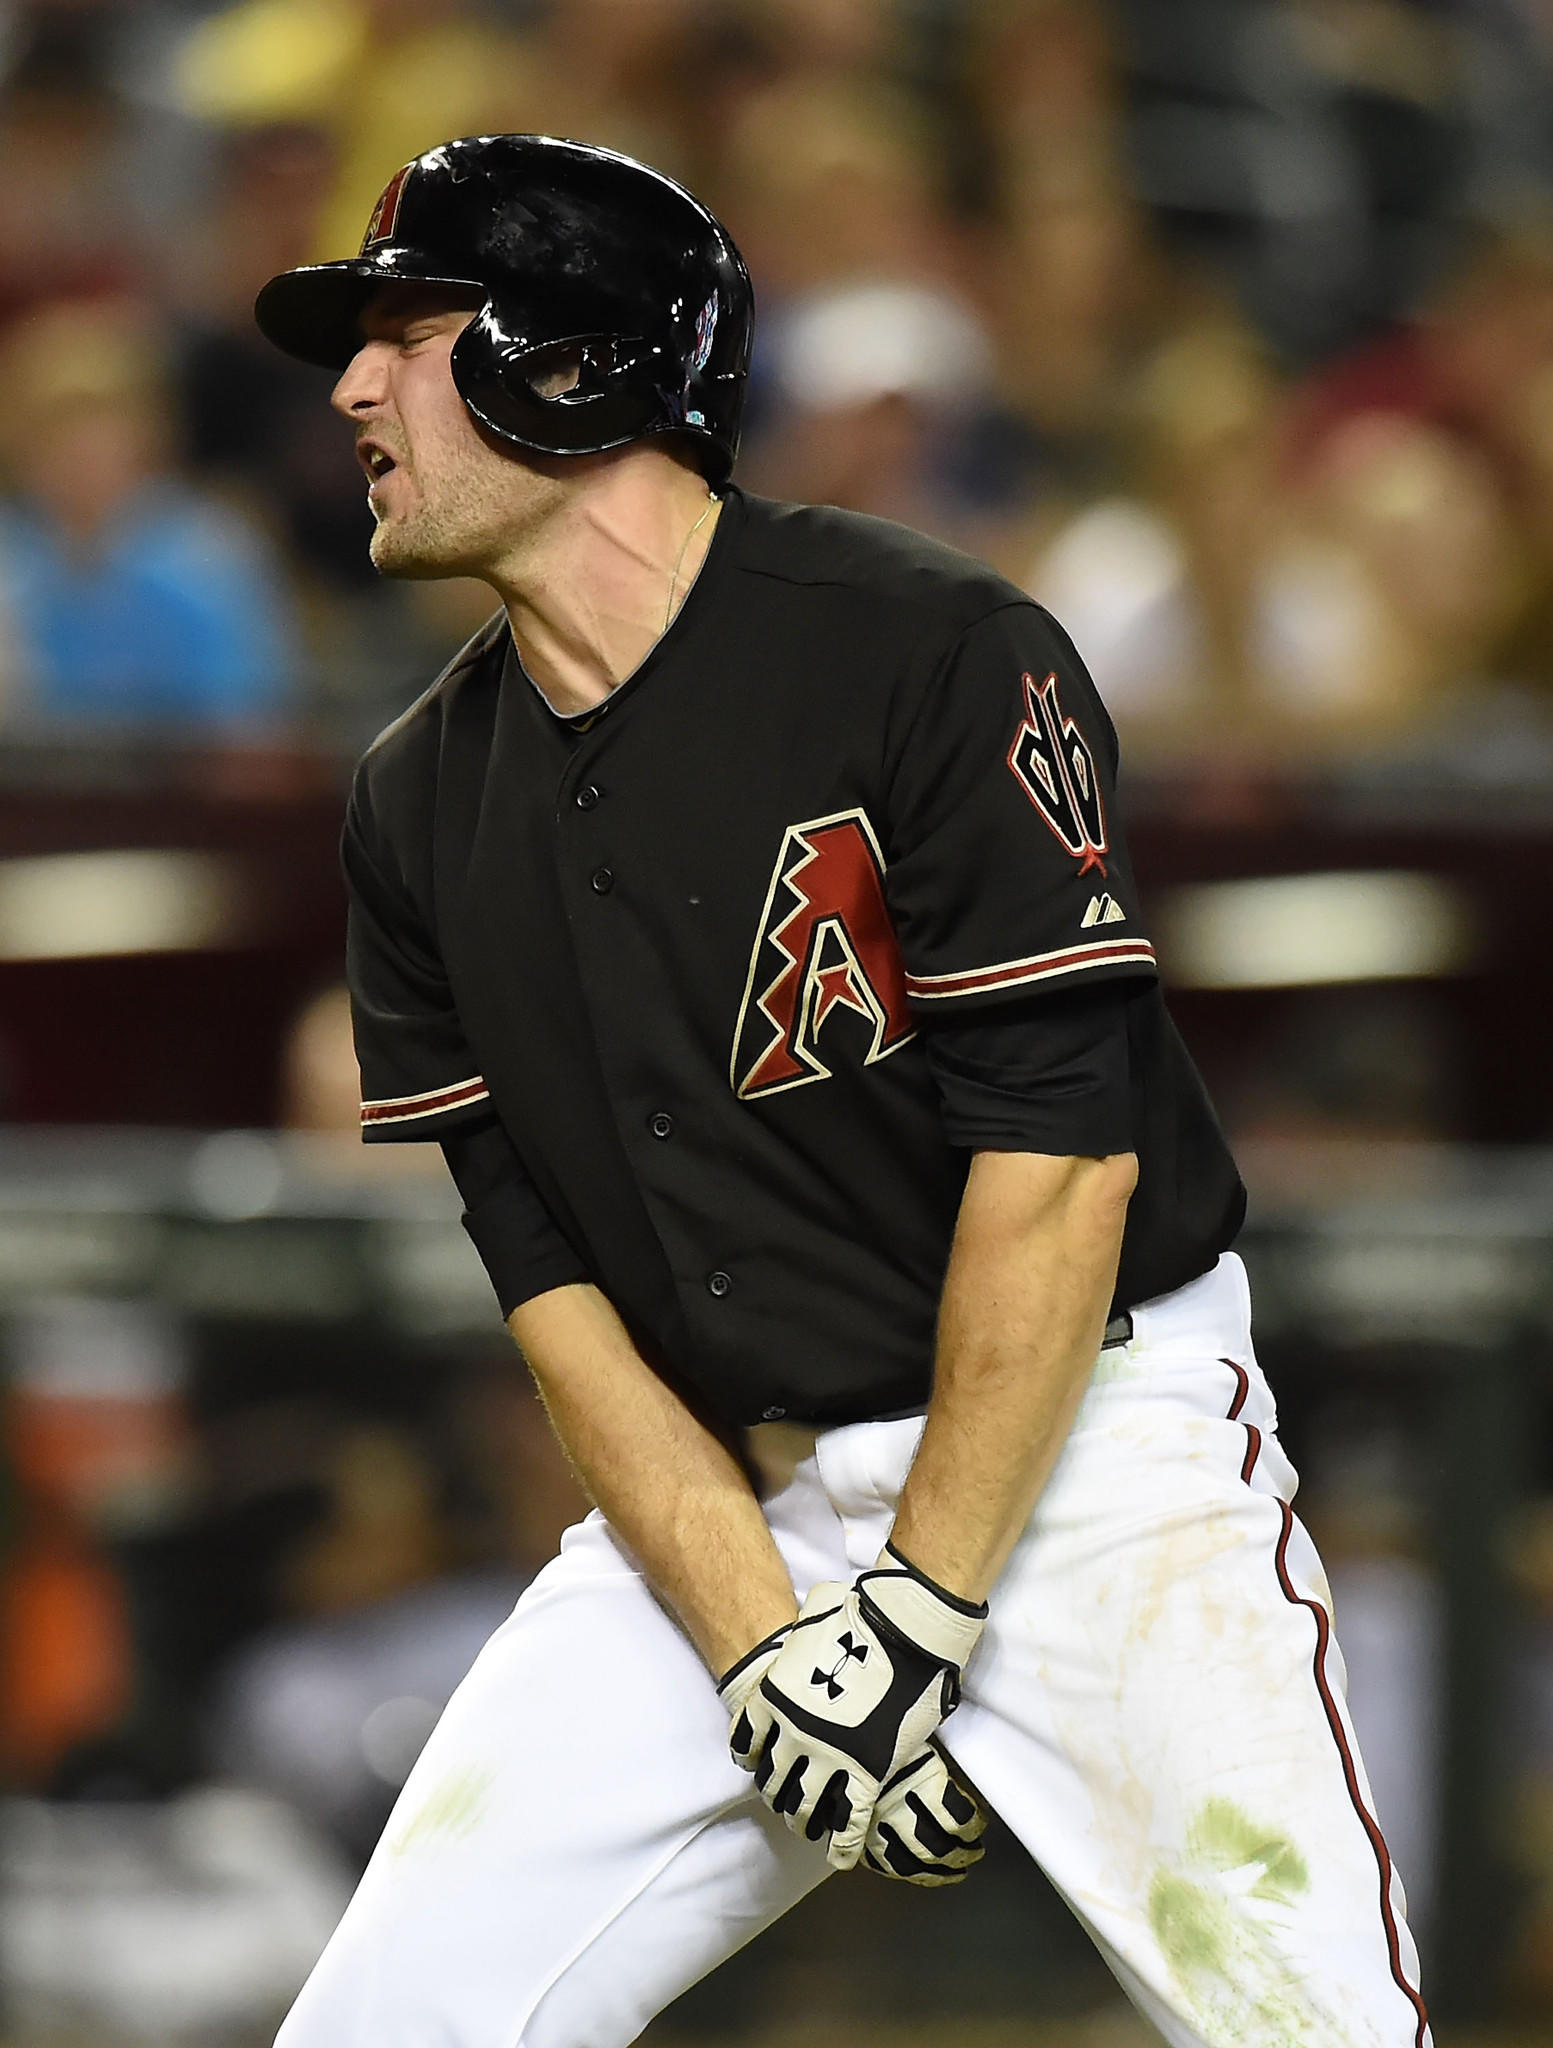 PHOENIX, AZ - MAY 31: AJ Pollock #11 of the Arizona Diamondbacks holds his hand after getting hit by a pitch in the eighth inning against the Cincinnati Reds at Chase Field on May 31, 2014 in Phoenix, Arizona. (Photo by Norm Hall/Getty Images) ORG XMIT: 477584185